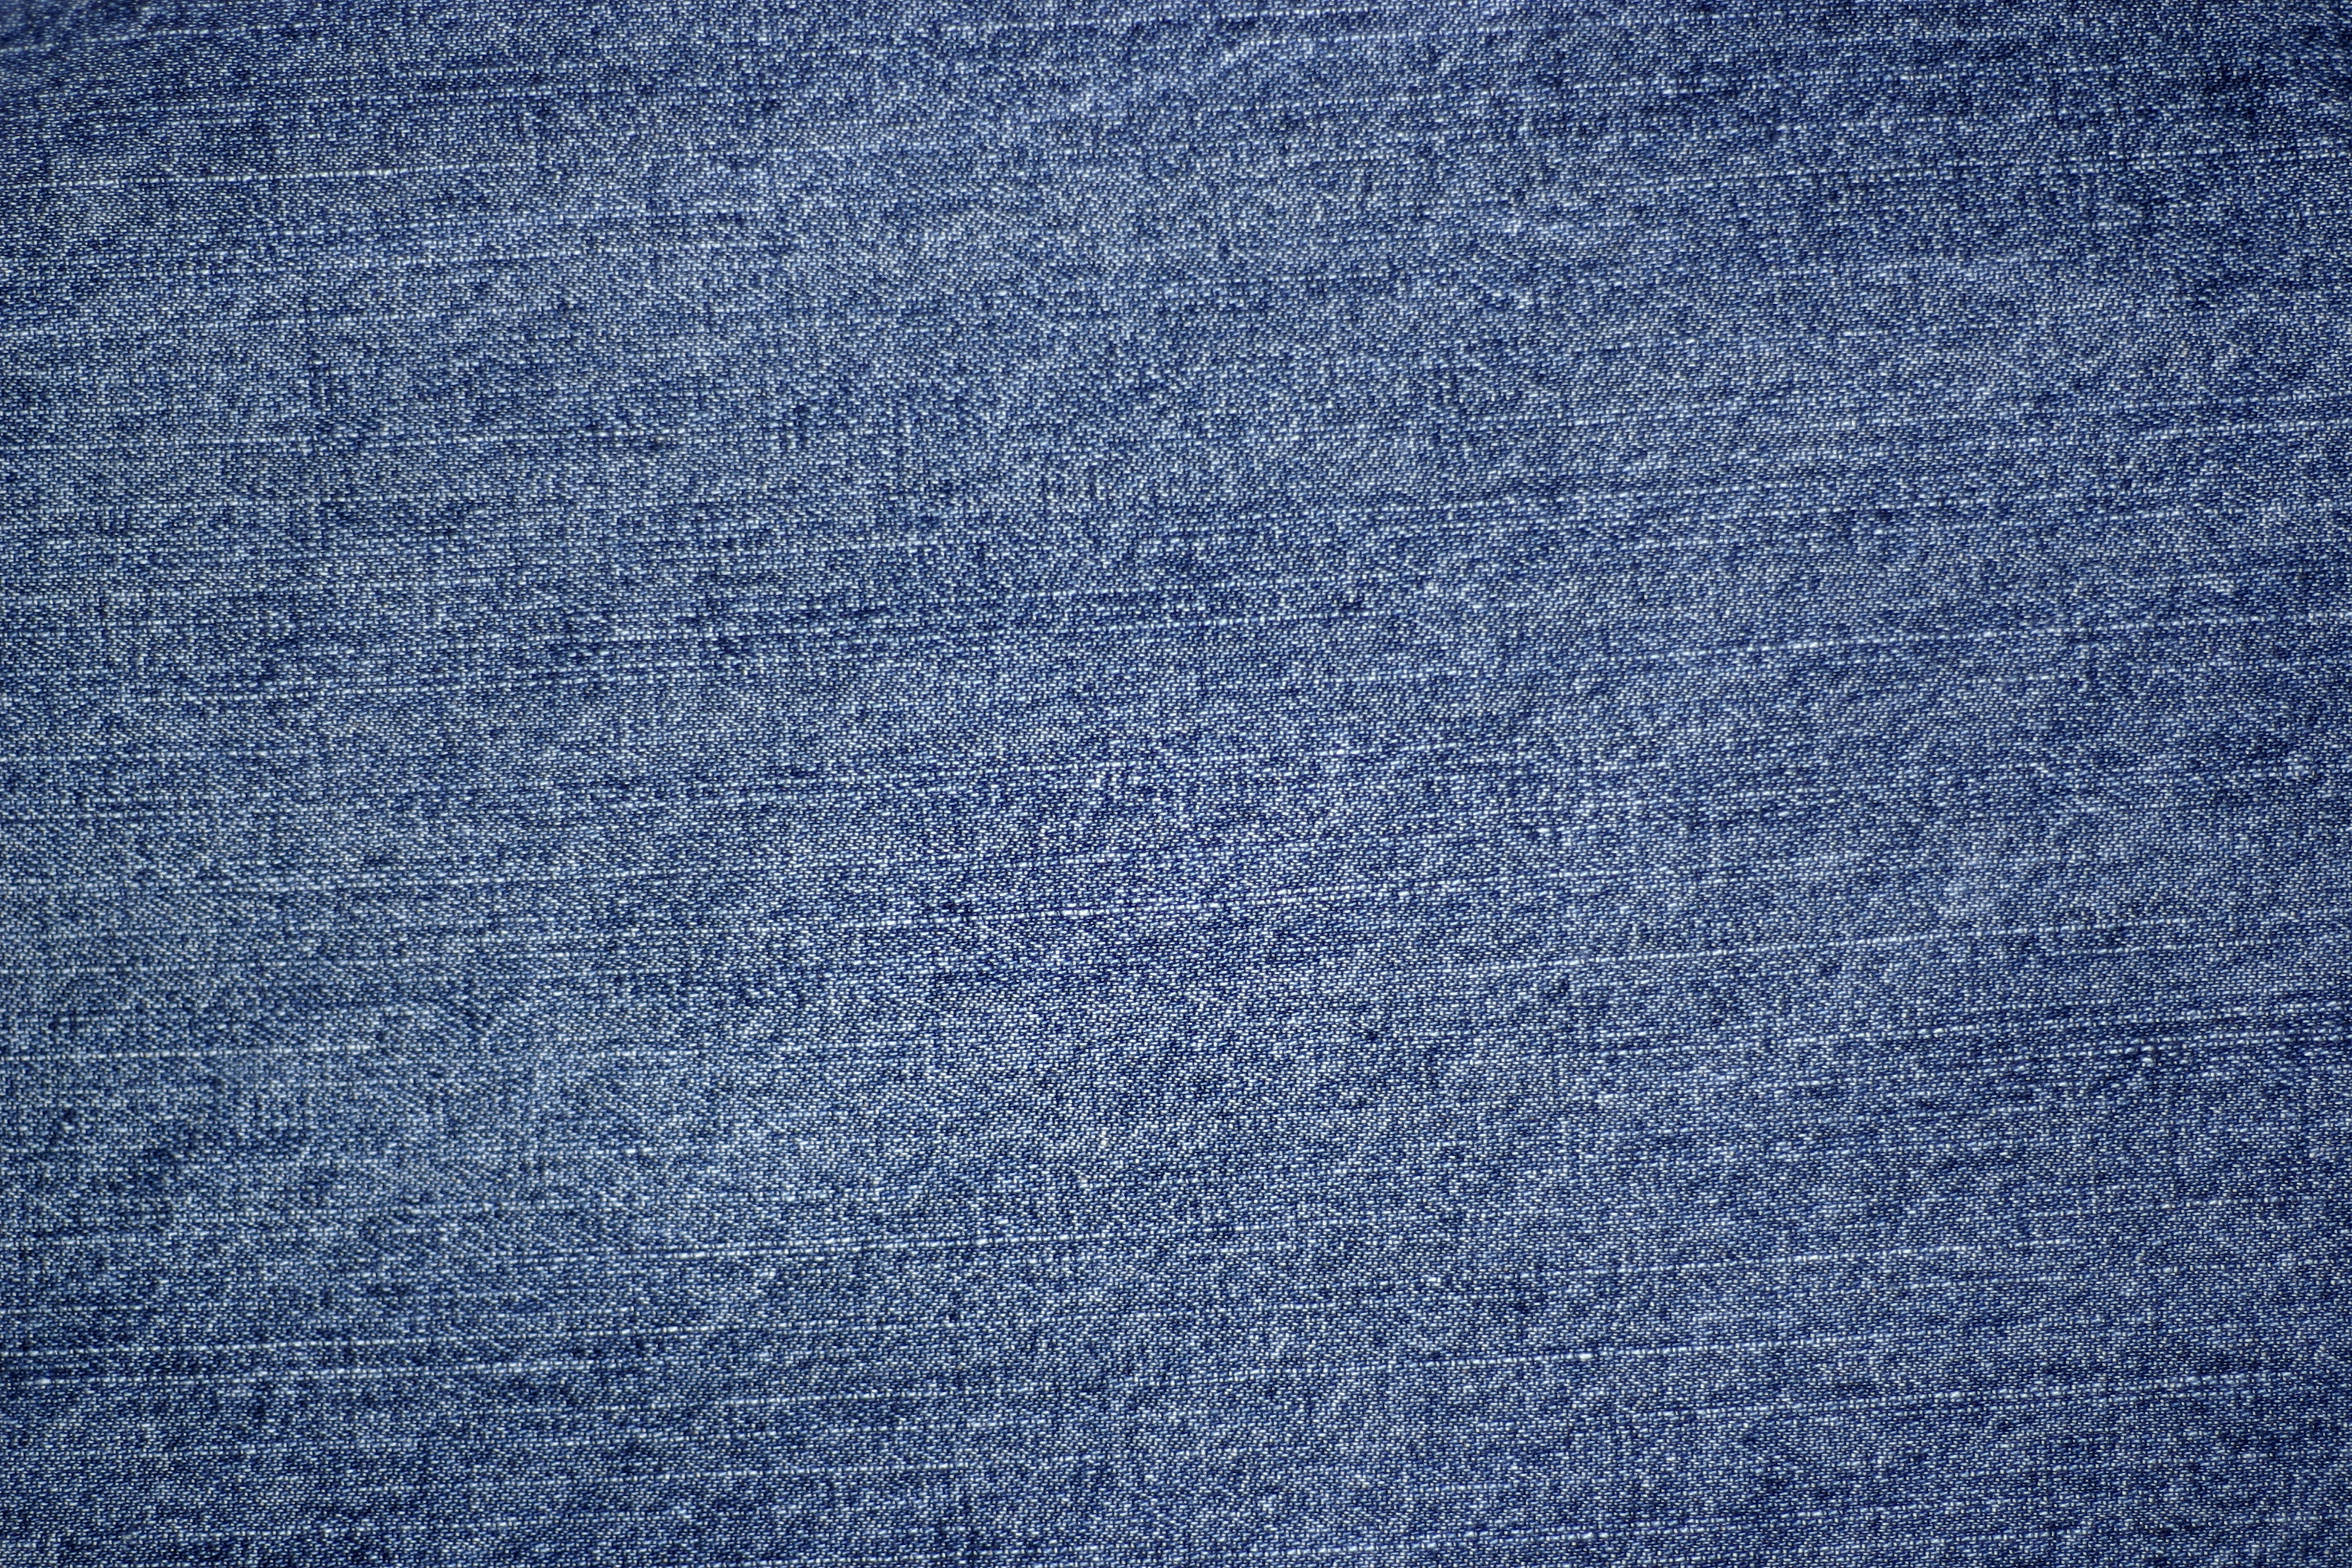 Denim Texture free background for windows #1023